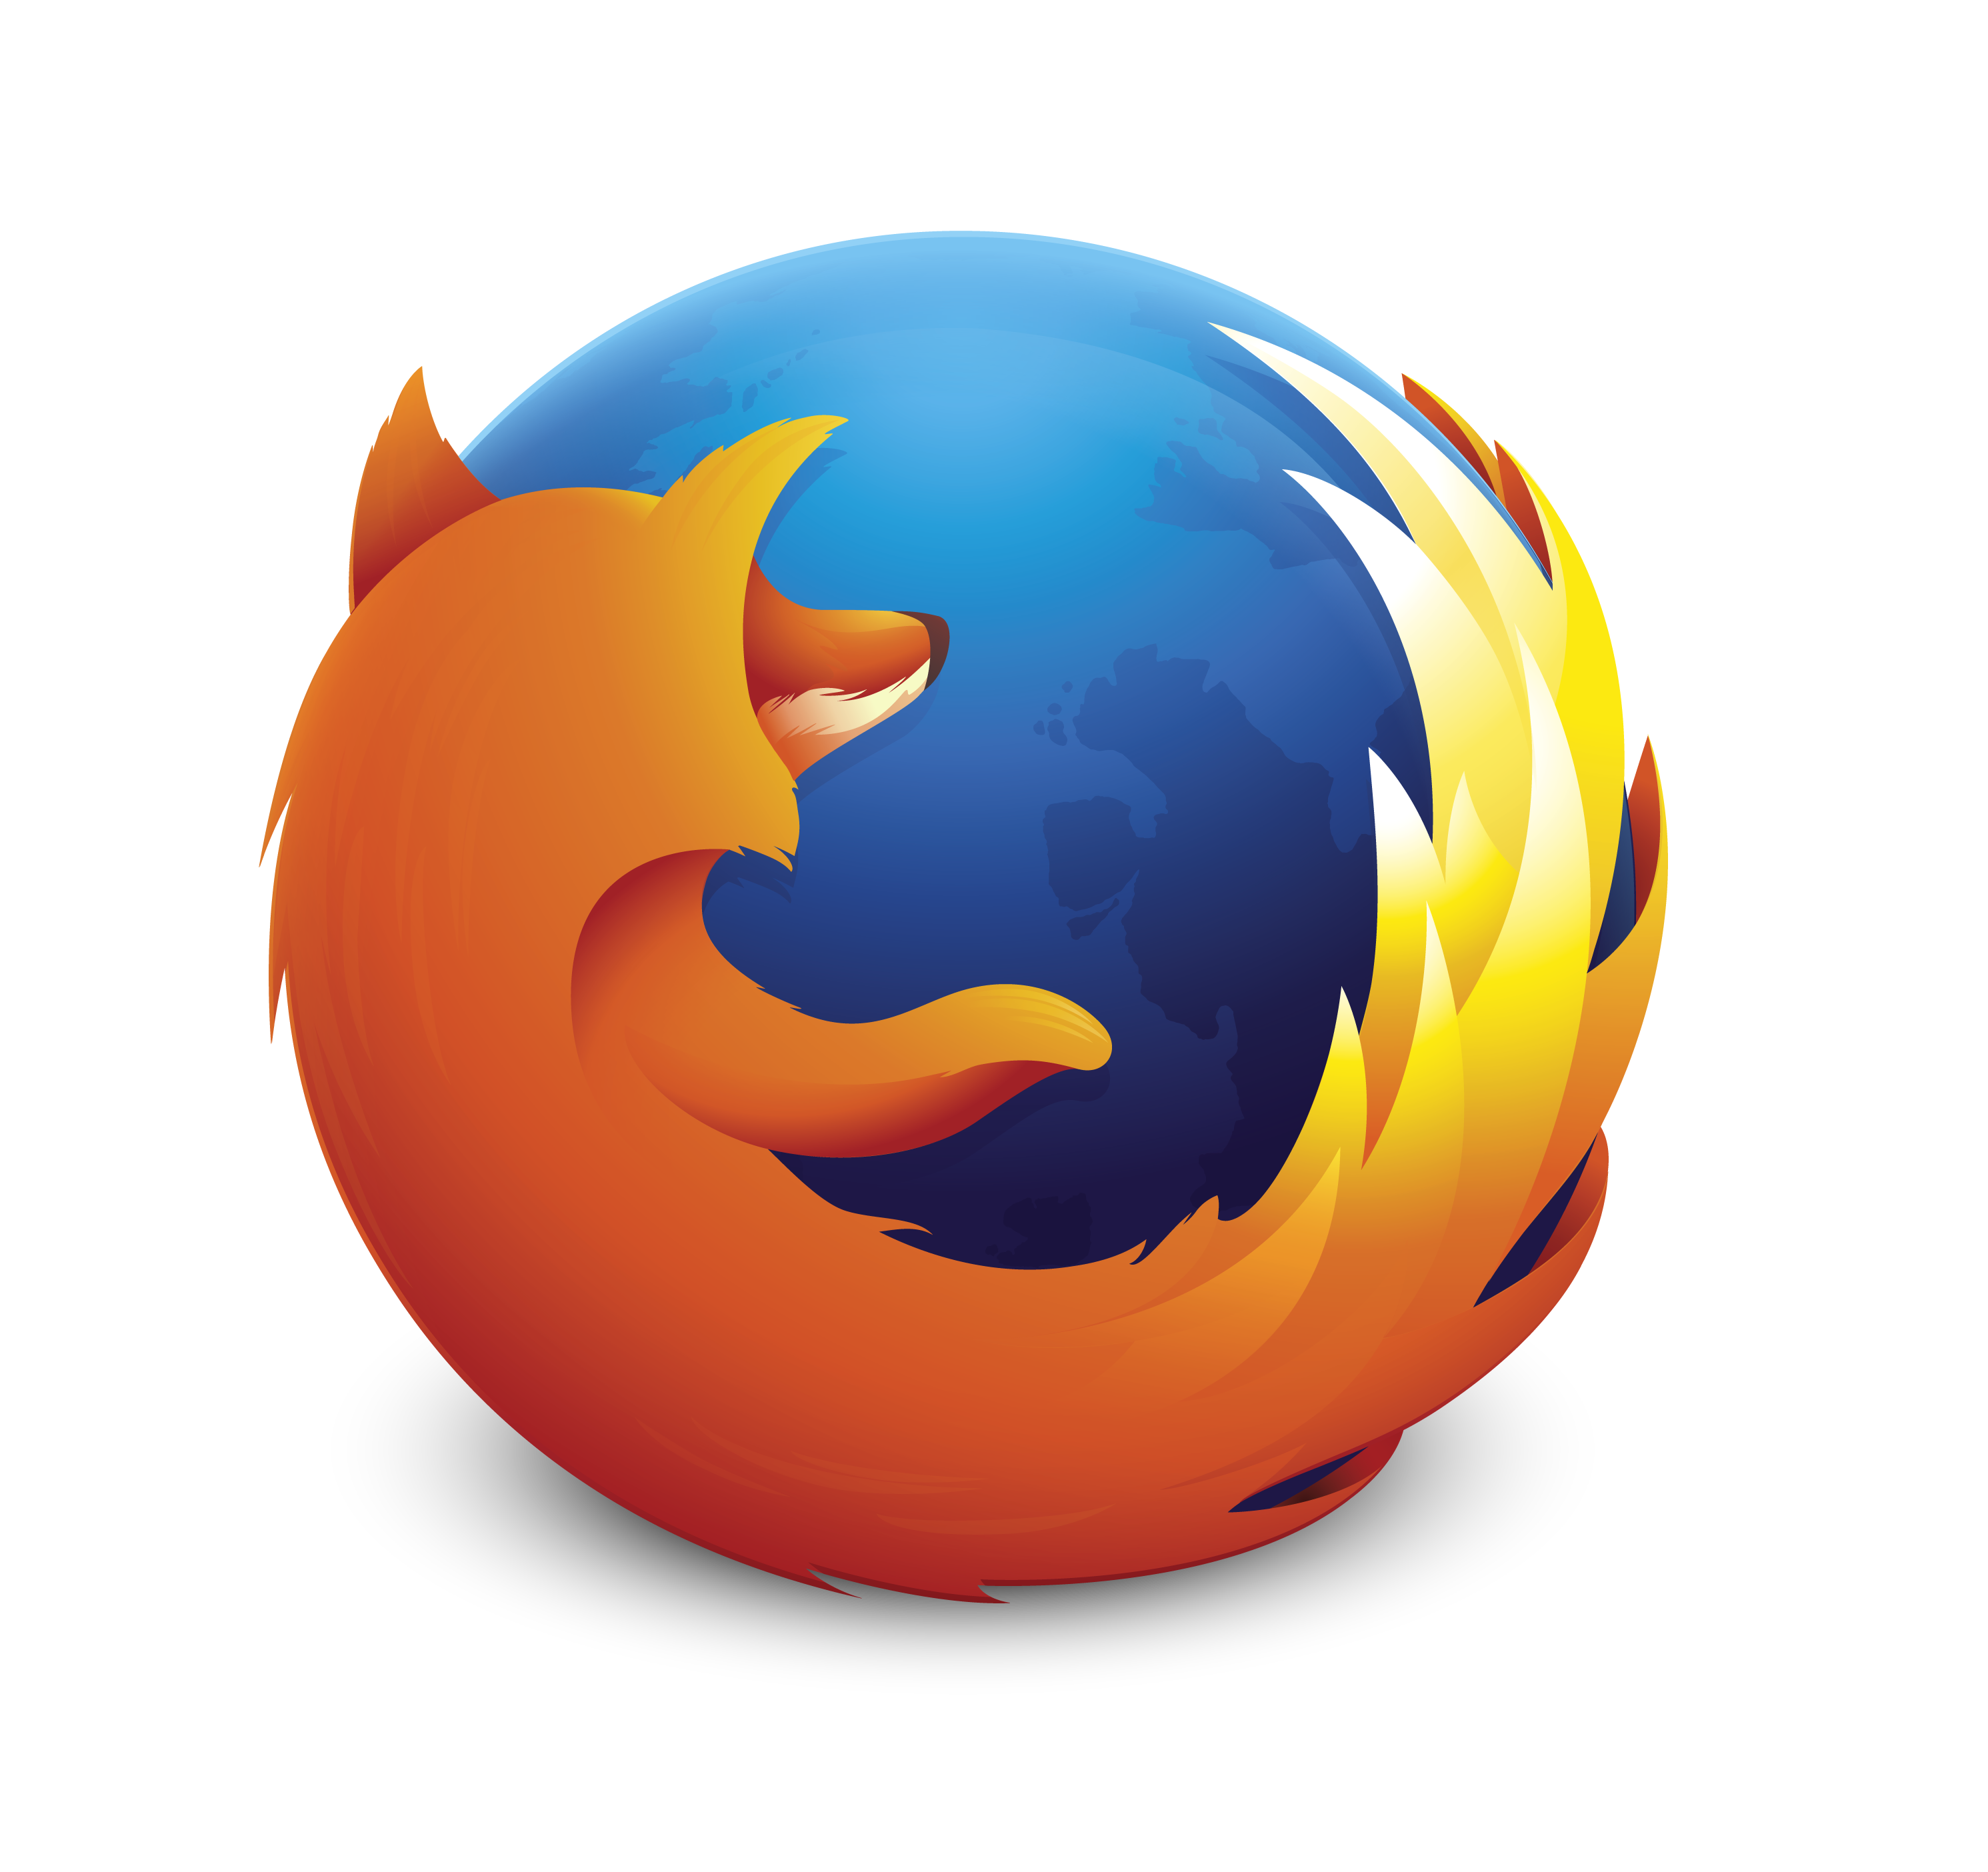 image showing the logo of Firefox